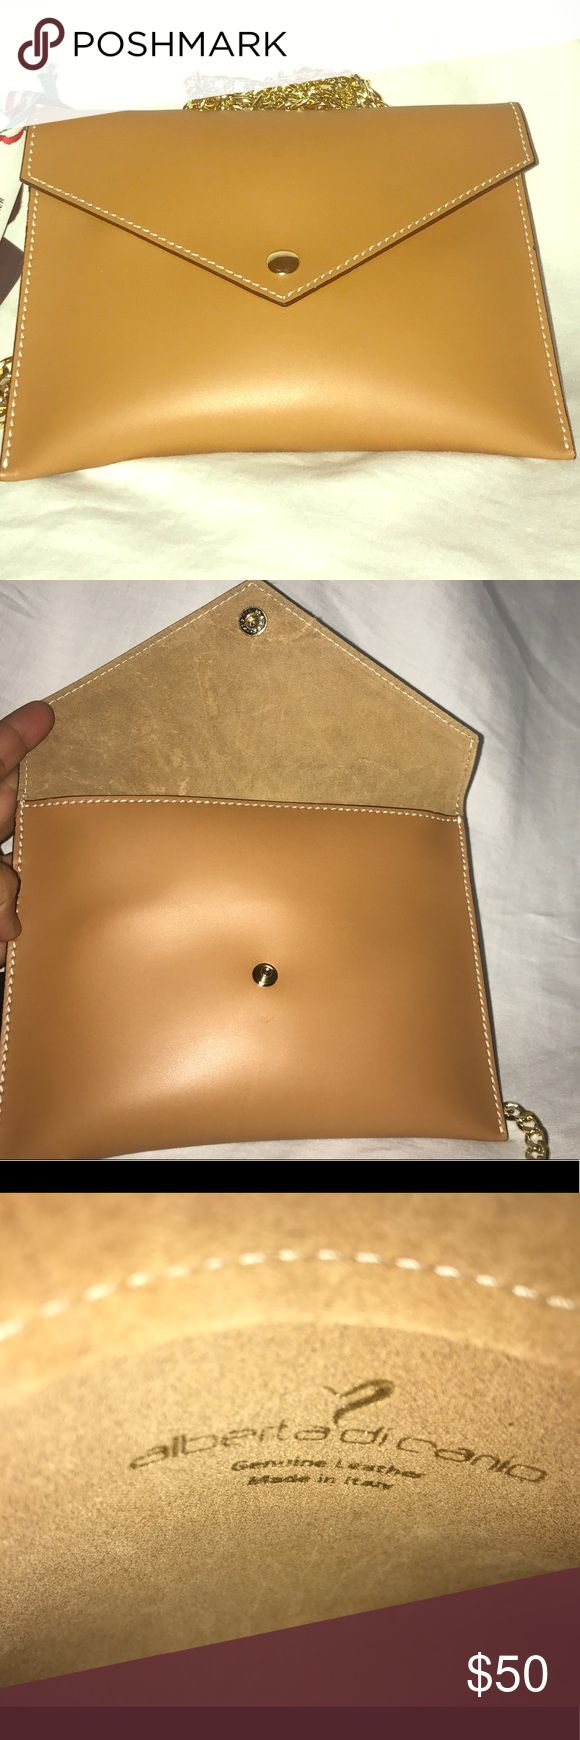 NWT ALBERTA DI CANIO ITALY CAMEL TAN LEATHER . Envelope Crossbody Purse Pouch Clutch bag Alberta Di Canio Bags Crossbody Bags